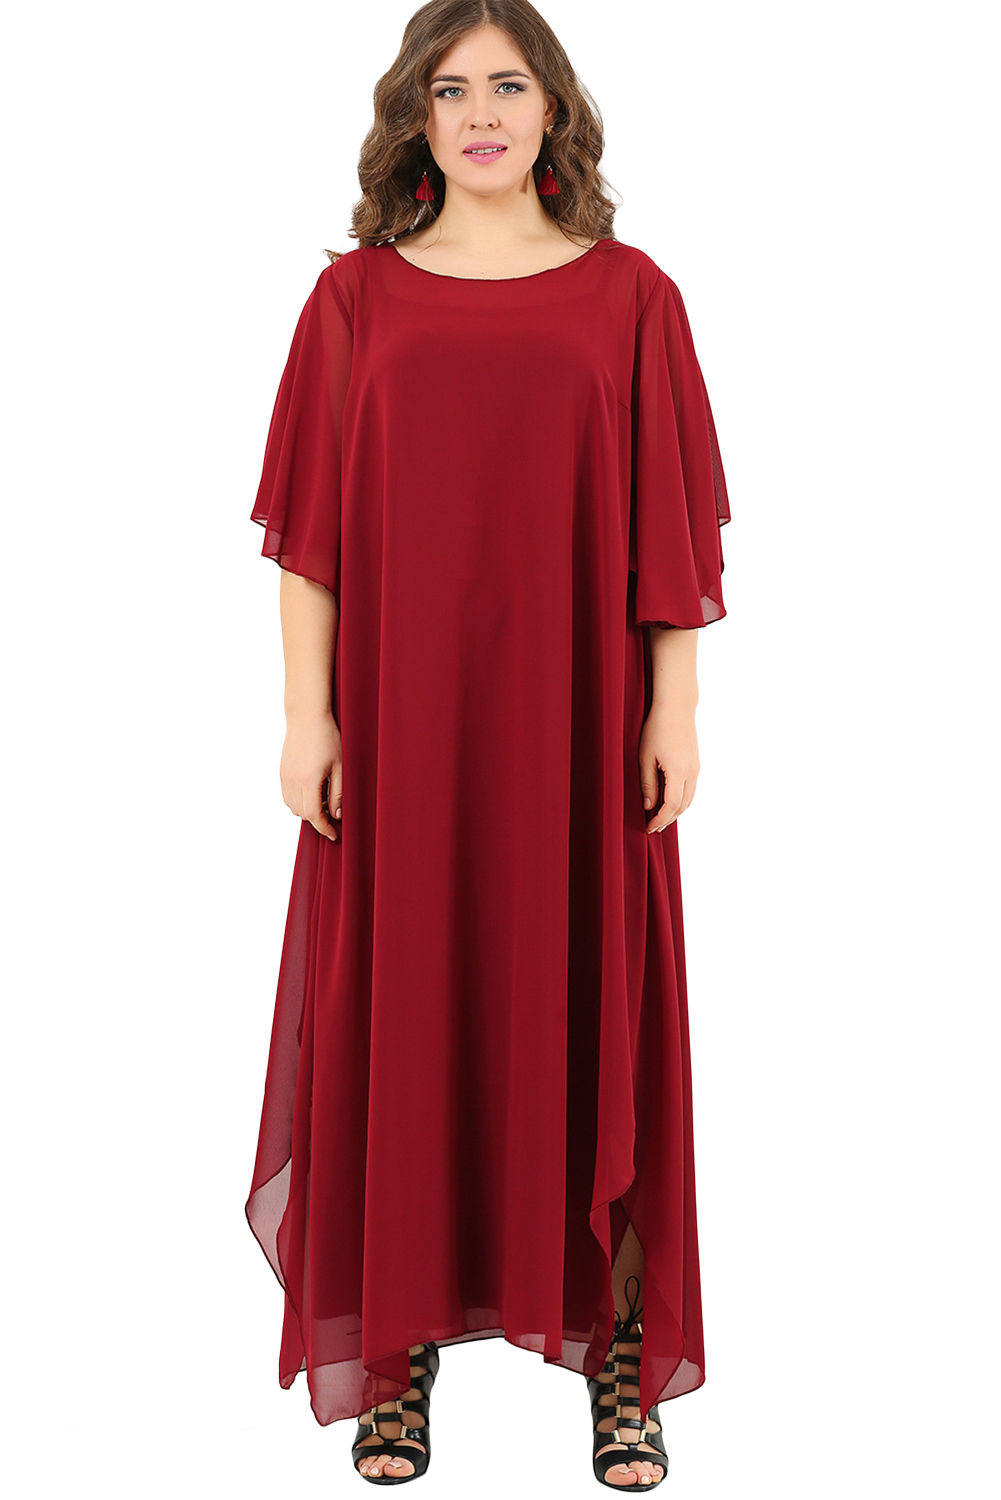 US$34.5 Zkess Red Plus Size Ruffle Chiffon Maxi Dress with Slit Sleeves